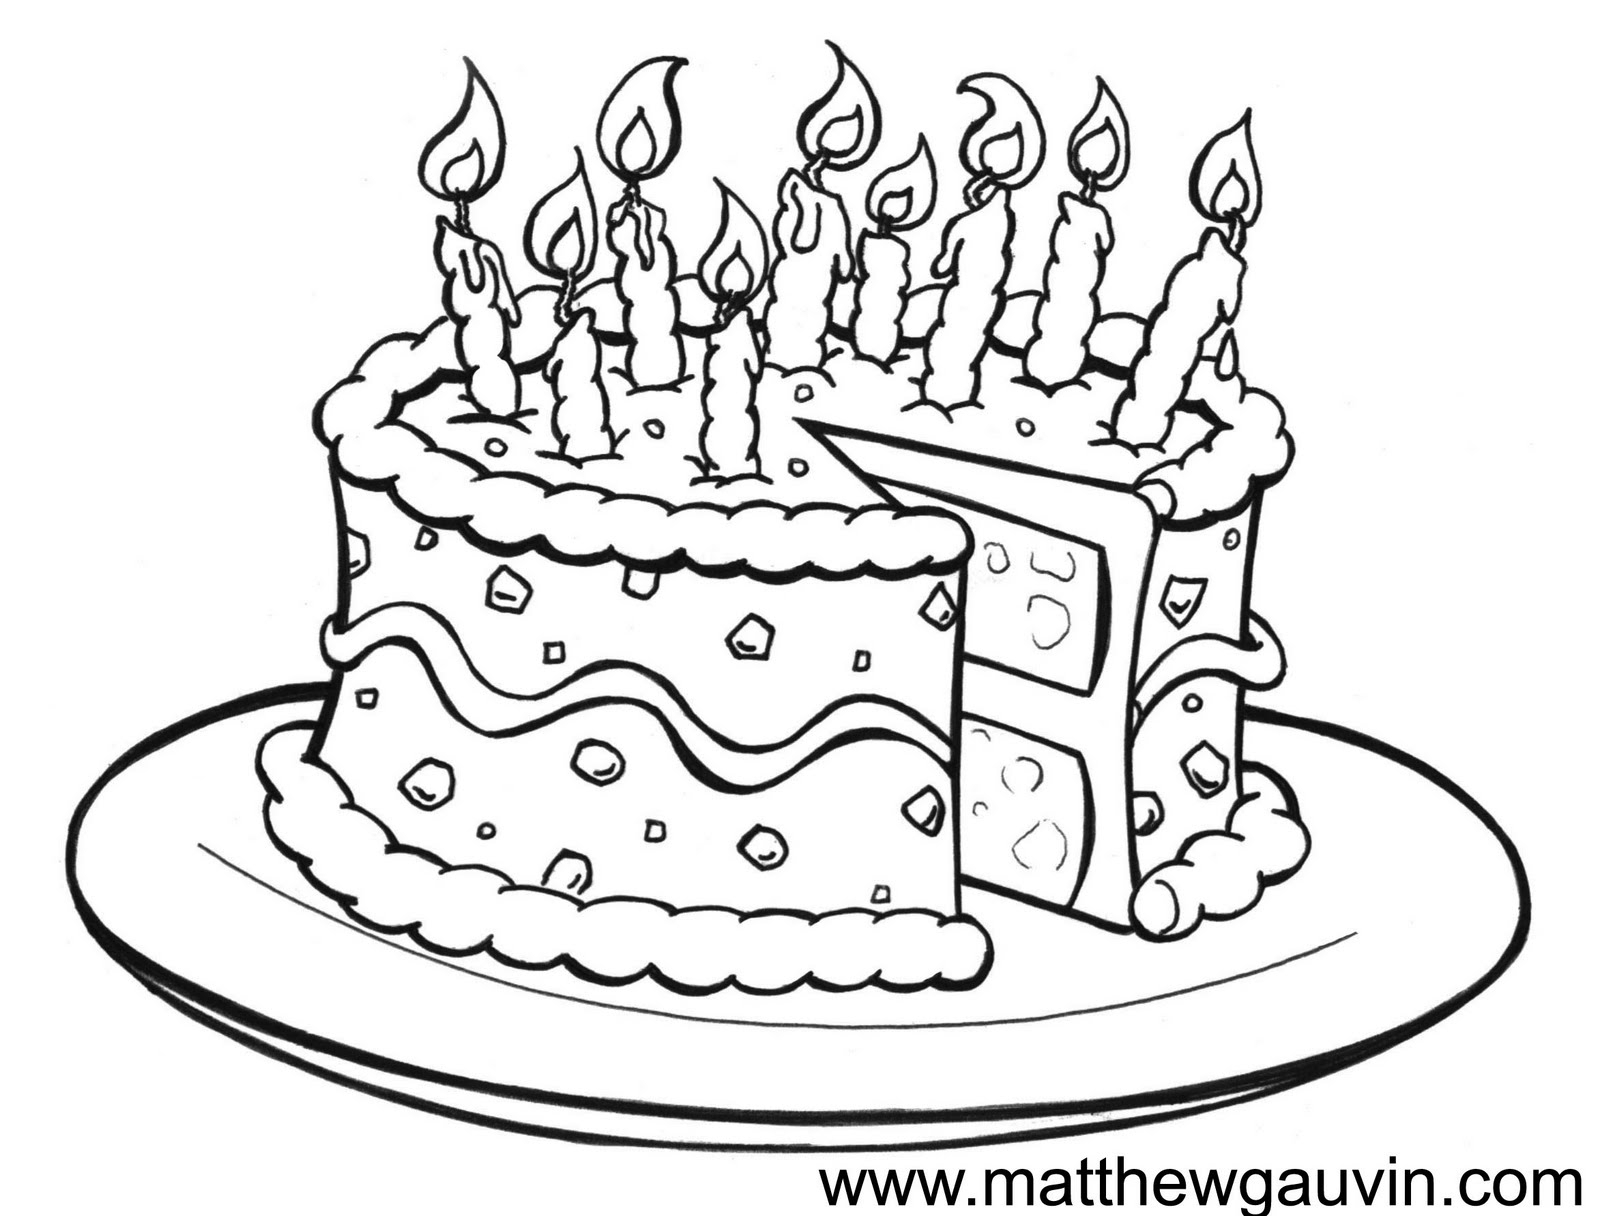 birthday drawings ; birthday-drawing-for-kids-birthday-drawings-mg-childrens-book-illustrations-birthday